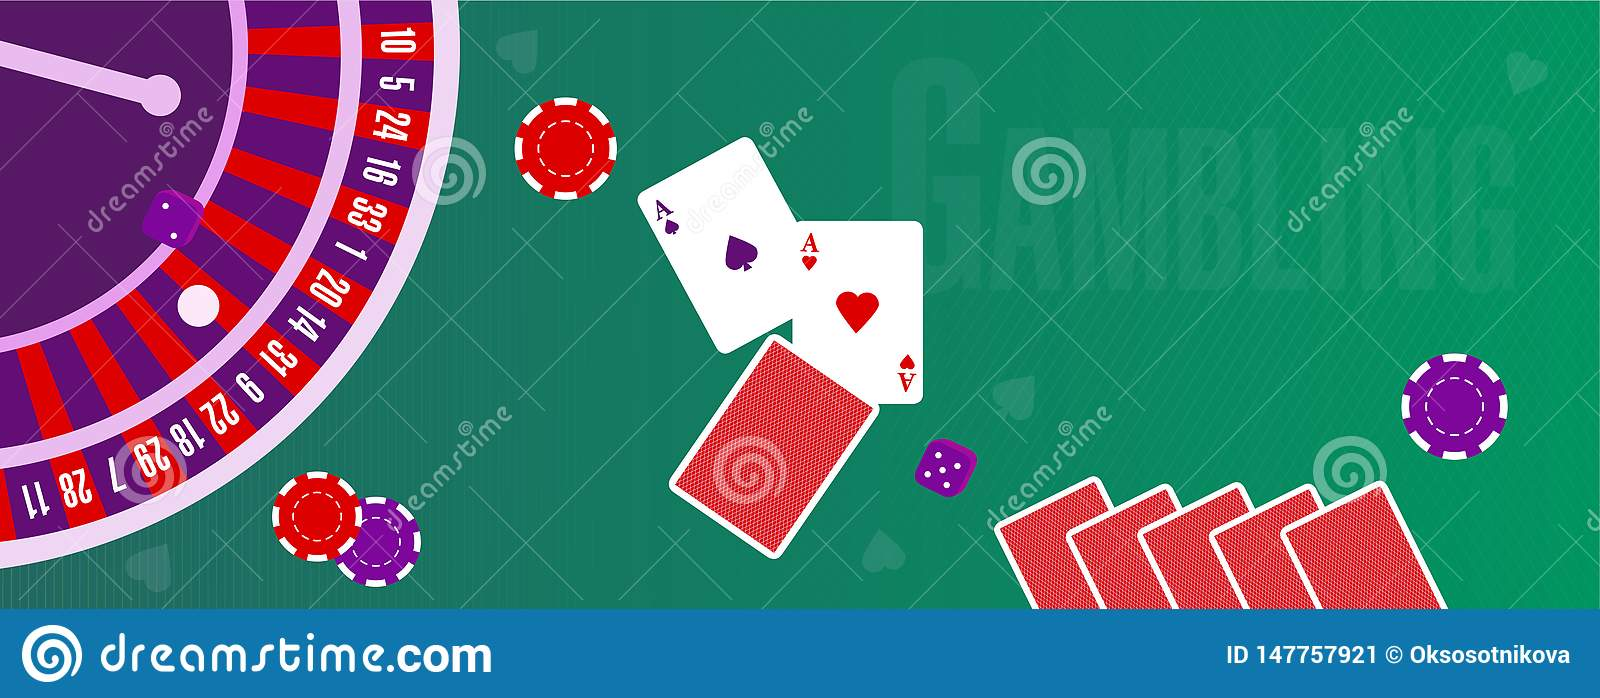 Vector illustration or cover for a site about gambling